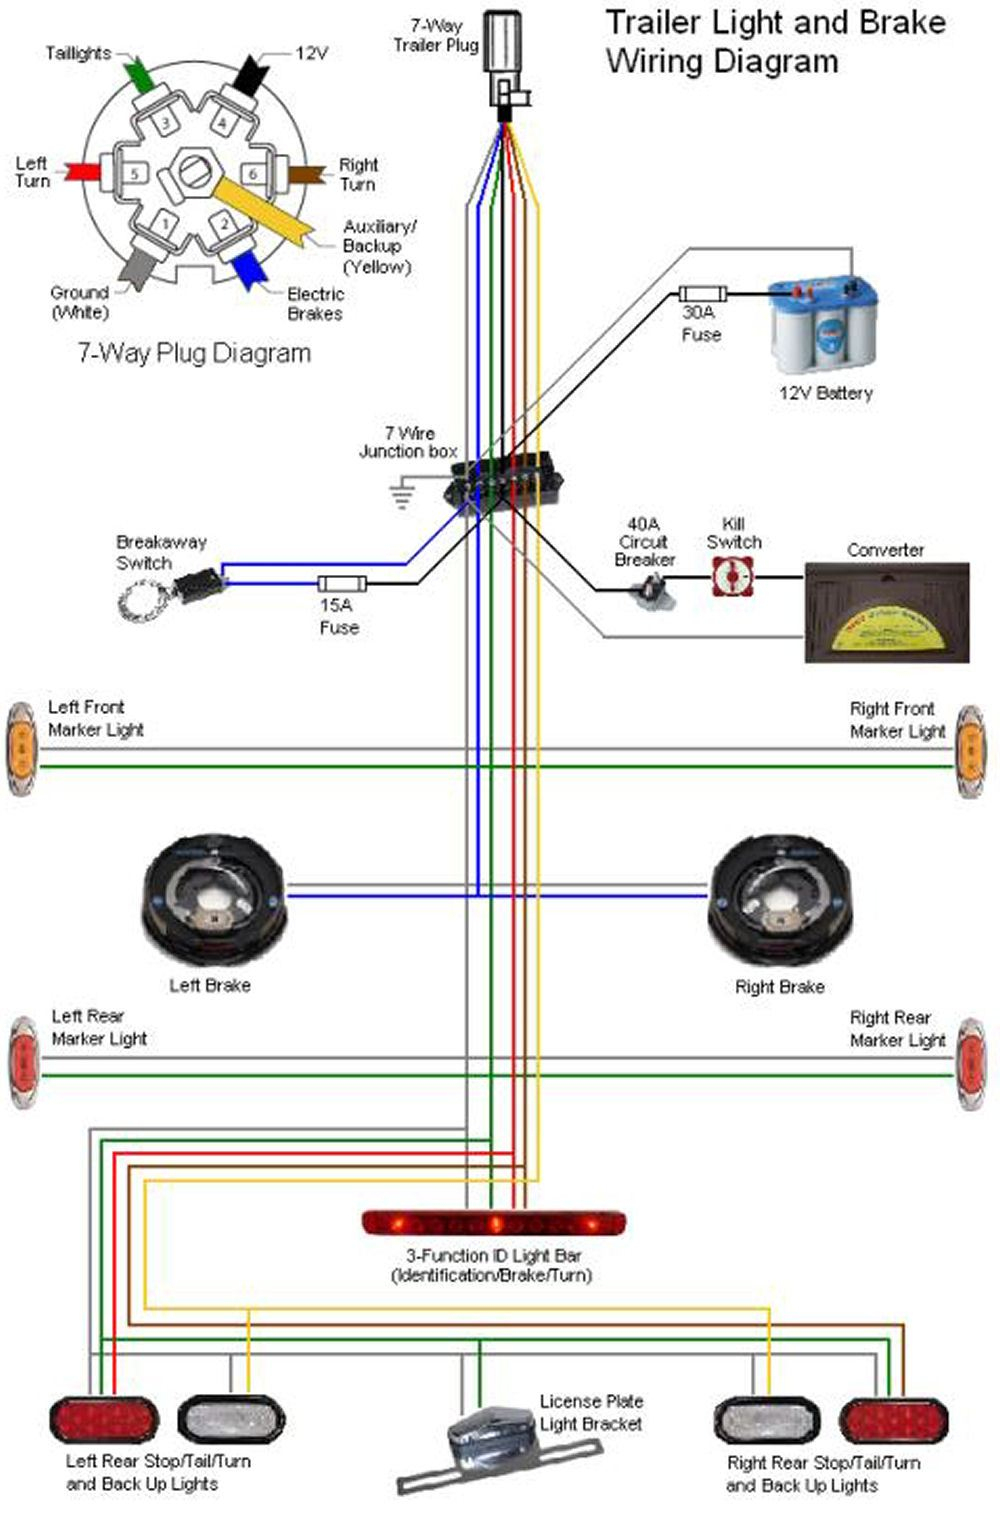 7 Wire Plug Diagram Pin Trailer Wiring | Wiring Diagram Ford Pin Wiring Diagram on ford e 350 wiring diagrams, ford 302 engine wiring diagrams, ford 2.0 engine diagram, 7 pin rv connector diagram, 2004 ford f250 parts diagram, 2006 ford f550 fuse diagram, ford 6.0 powerstroke engine diagram, ford 4 pin wiring diagram, ford 7 pronge wiring-diagram, ford 7 pin trailer wiring, ford 5 pin wiring diagram, ford 7 wire trailer plug harness, ford brake controller wiring, ford cop ignition wiring diagrams, 7 pin trailer connector diagram, ford trailer plug diagram, ford f-250 fuse box diagram, ford wiring color codes, ford electrical wiring diagrams, ford wiring harness diagrams,